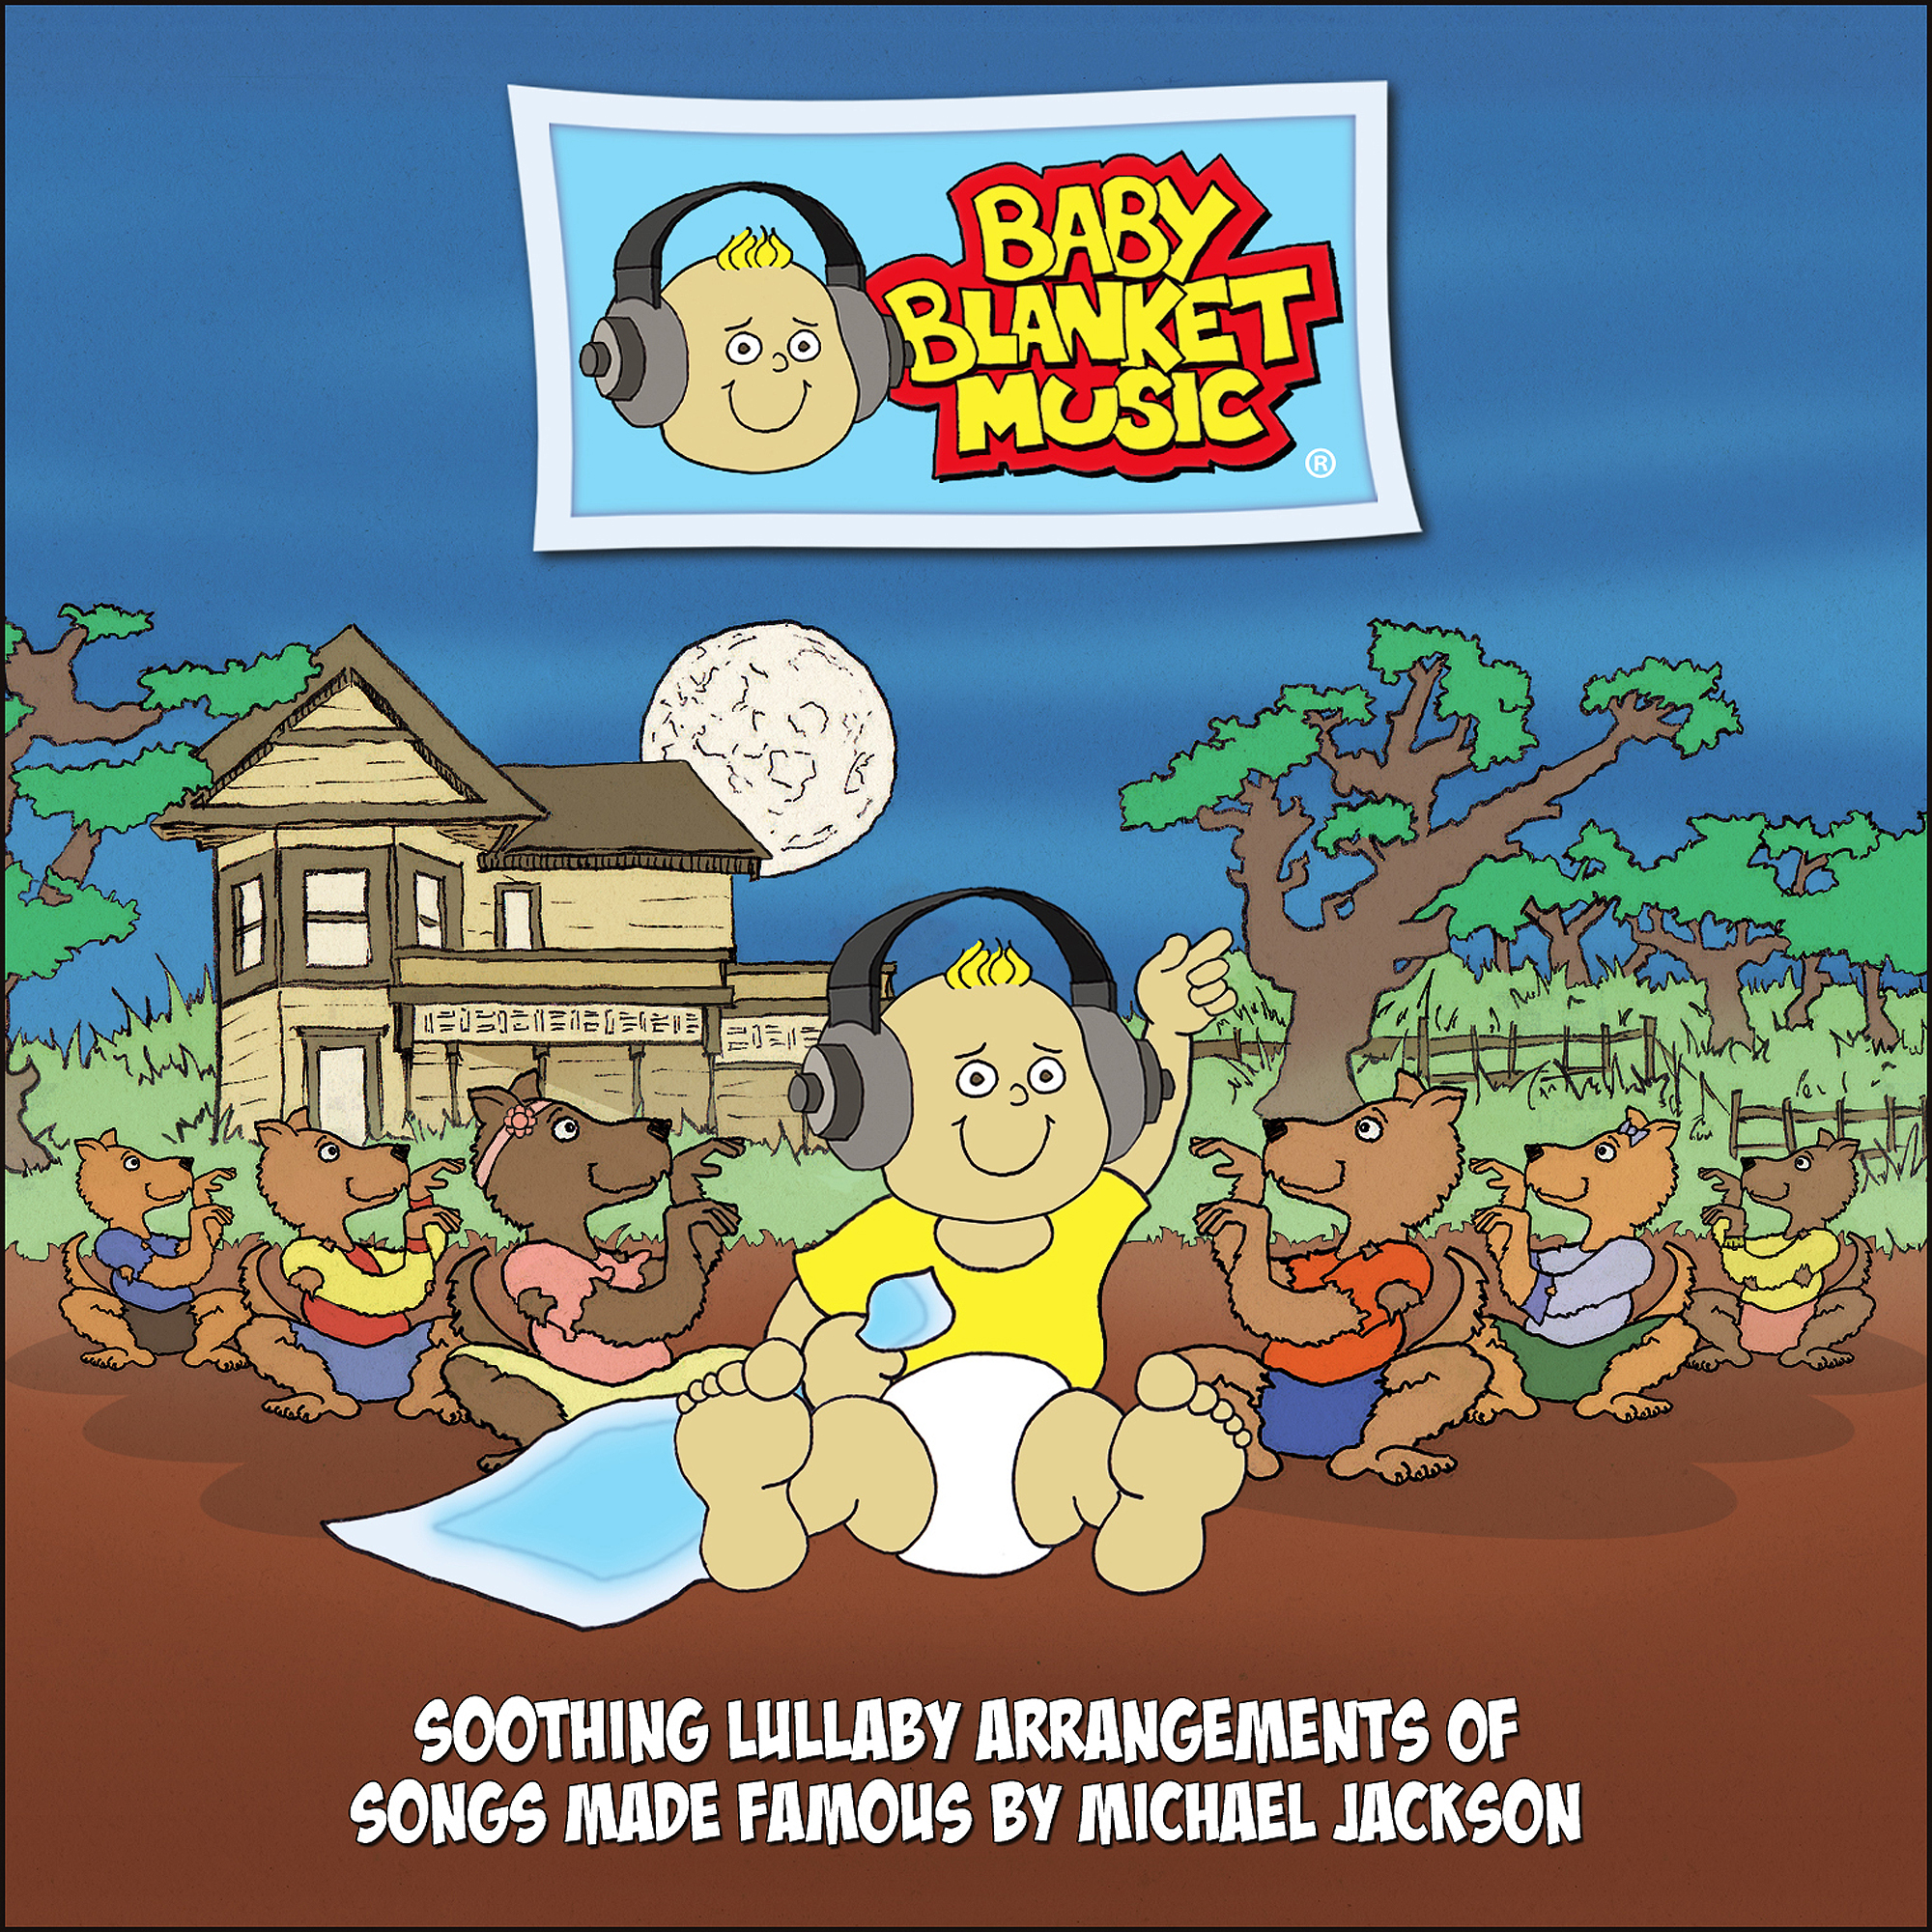 Baby Blanket Music CD, Soothing Lullaby Arrangements of Songs Made Famous by Michael Jackson